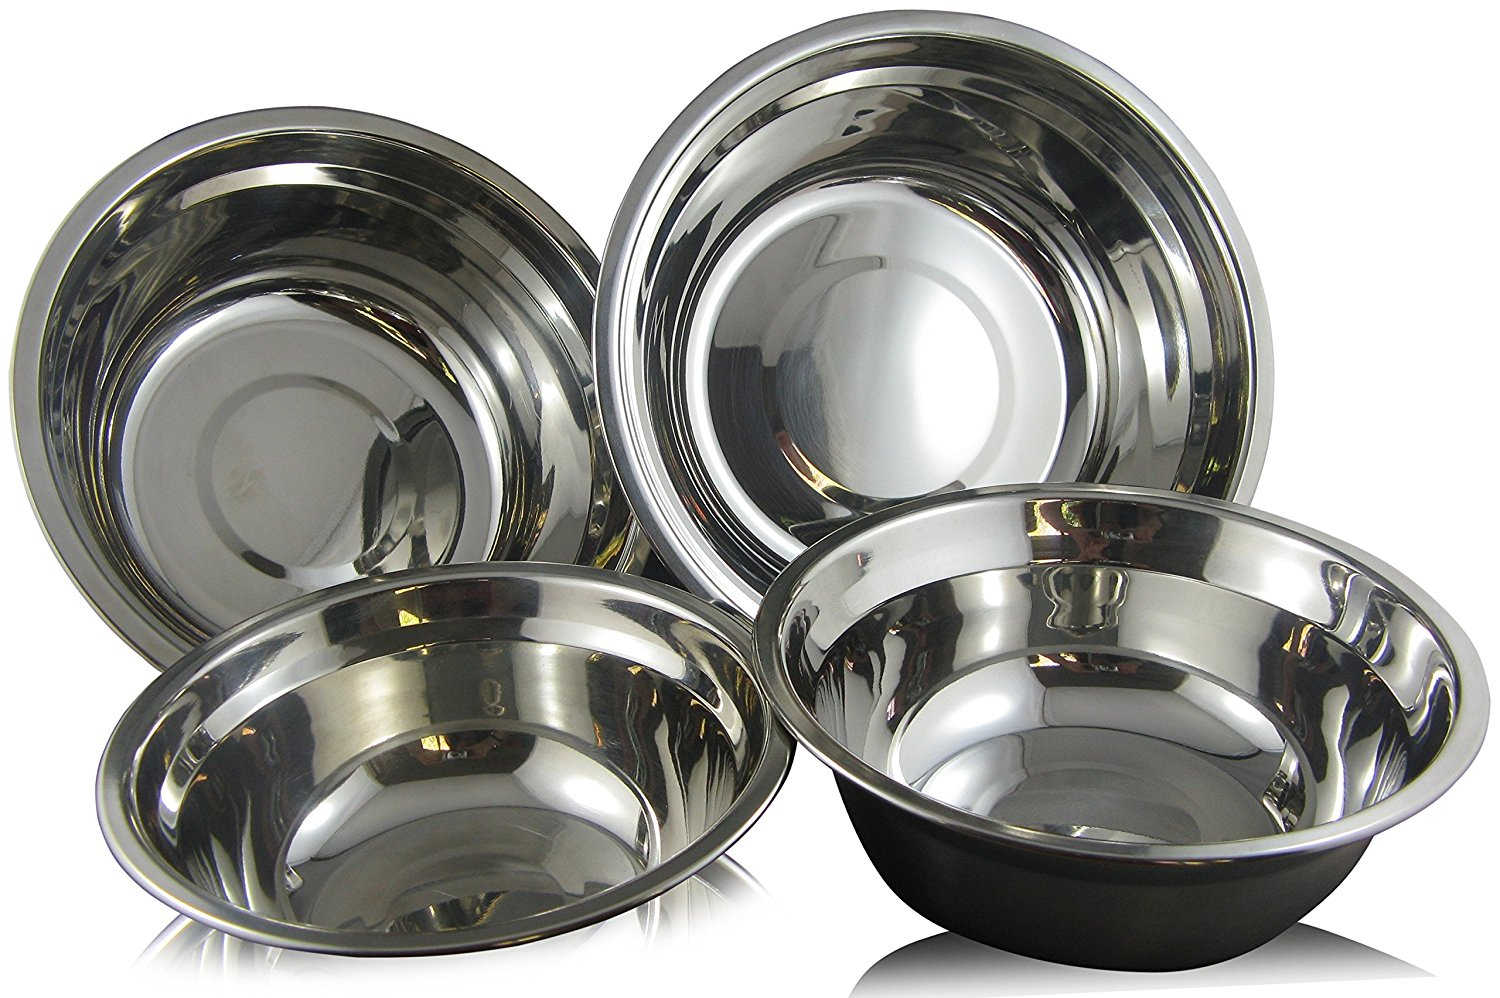 Checkered Chef Stainless Steel Mixing Bowl Set 4 Metal Prep Bowls